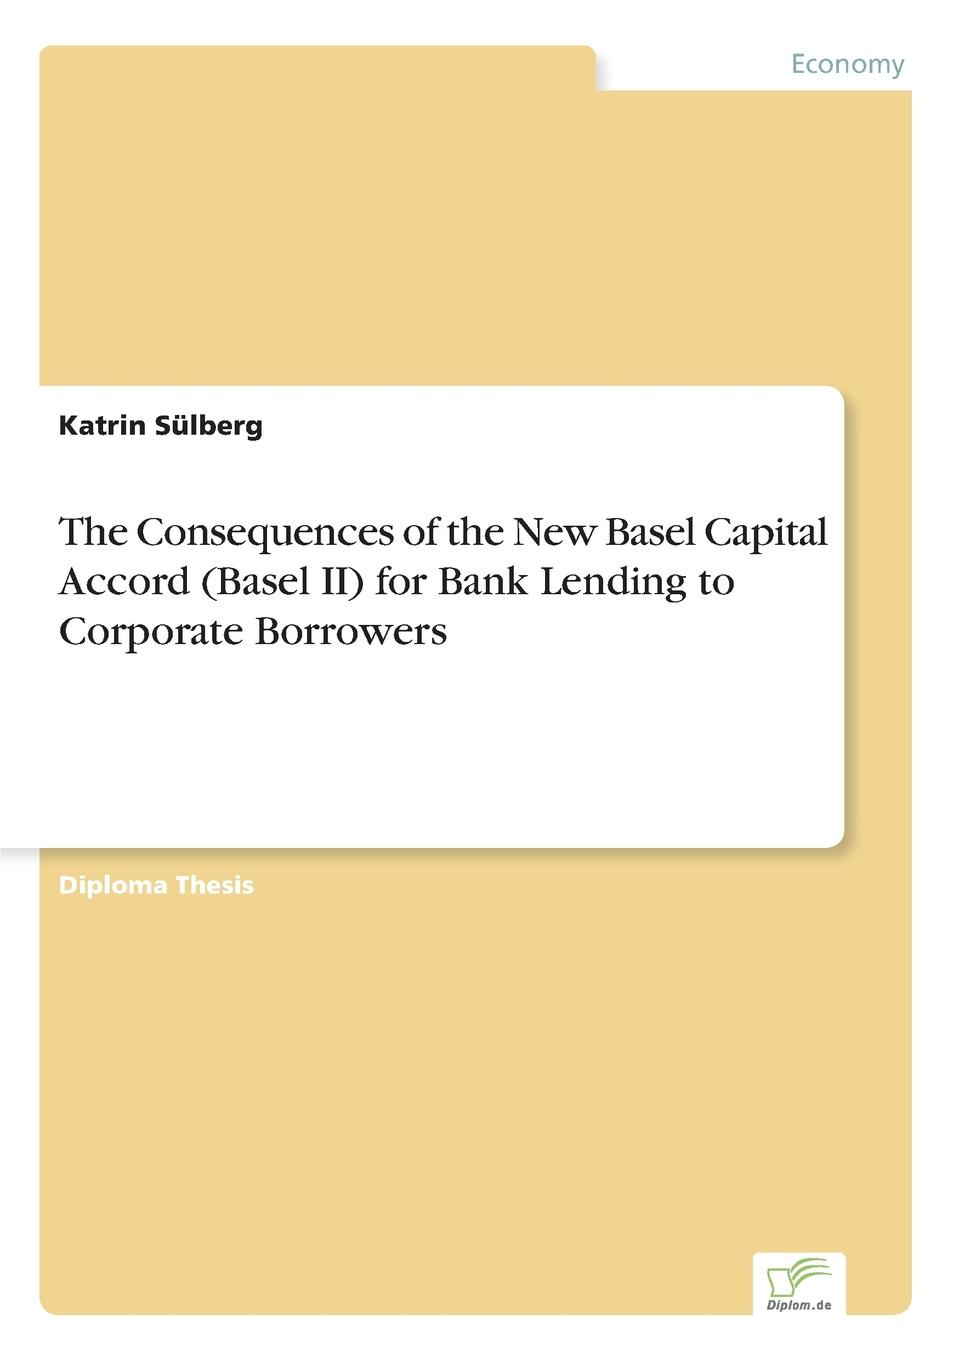 Katrin Sülberg The Consequences of the New Basel Capital Accord (Basel II) for Bank Lending to Corporate Borrowers juan ramirez handbook of basel iii capital enhancing bank capital in practice